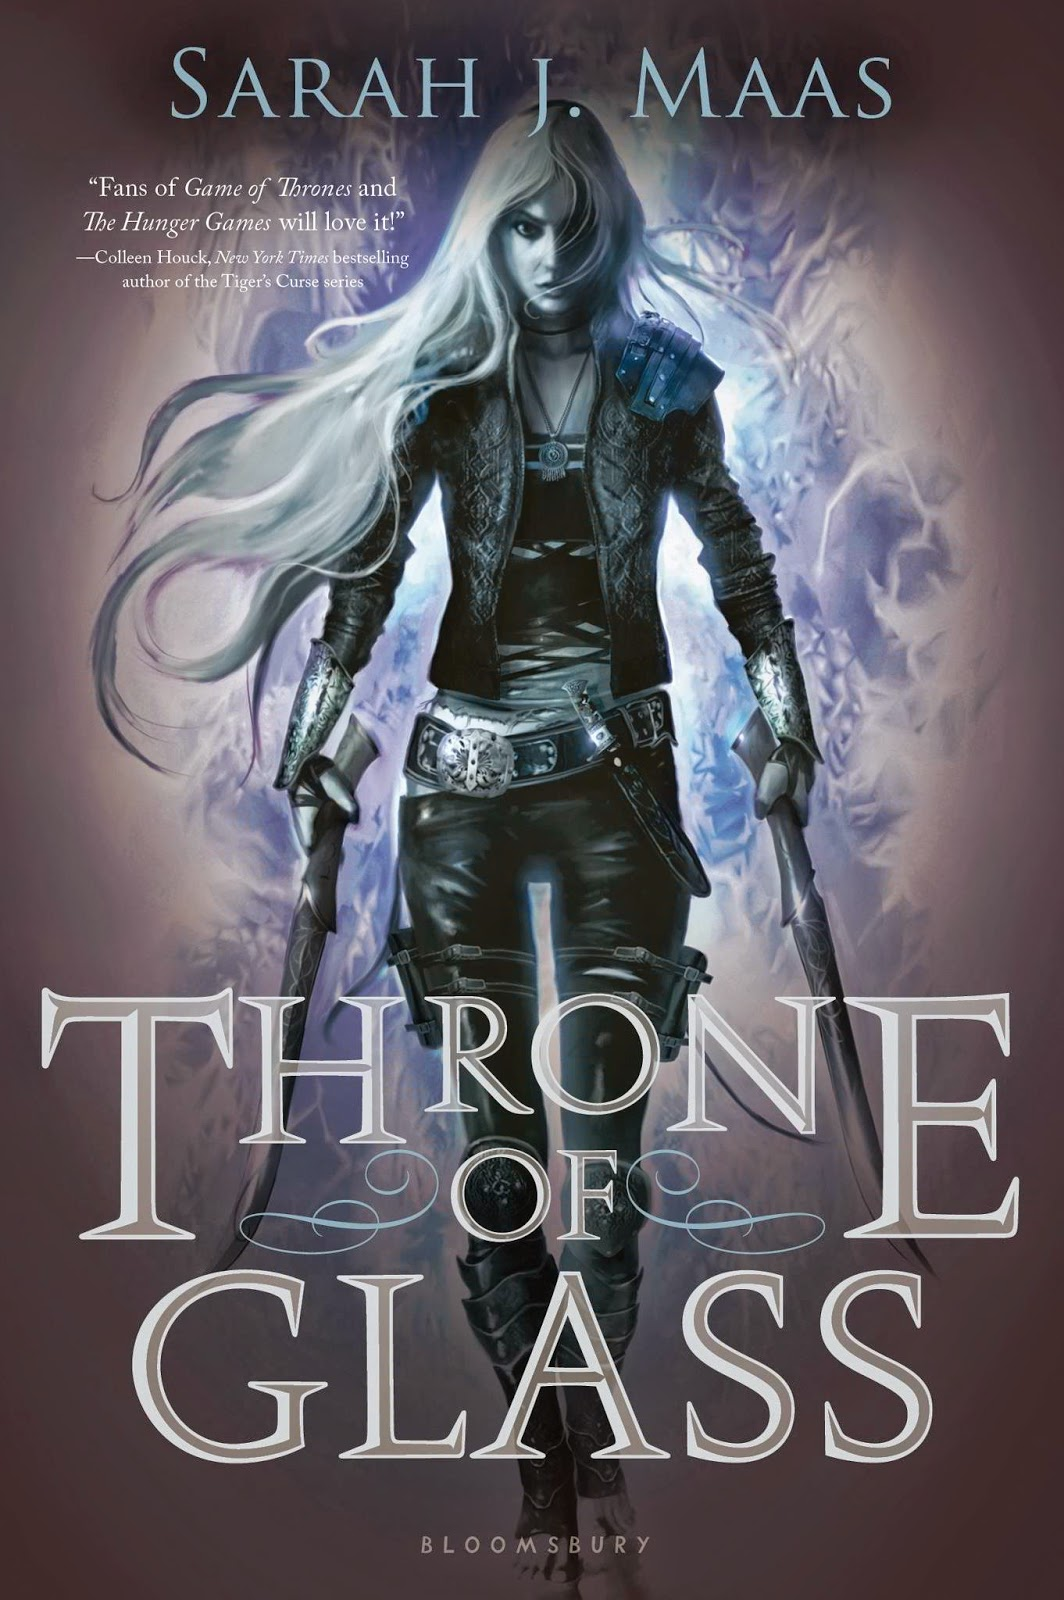 throne of glass ya young adult fantasy cover large hd by sarah j. maas